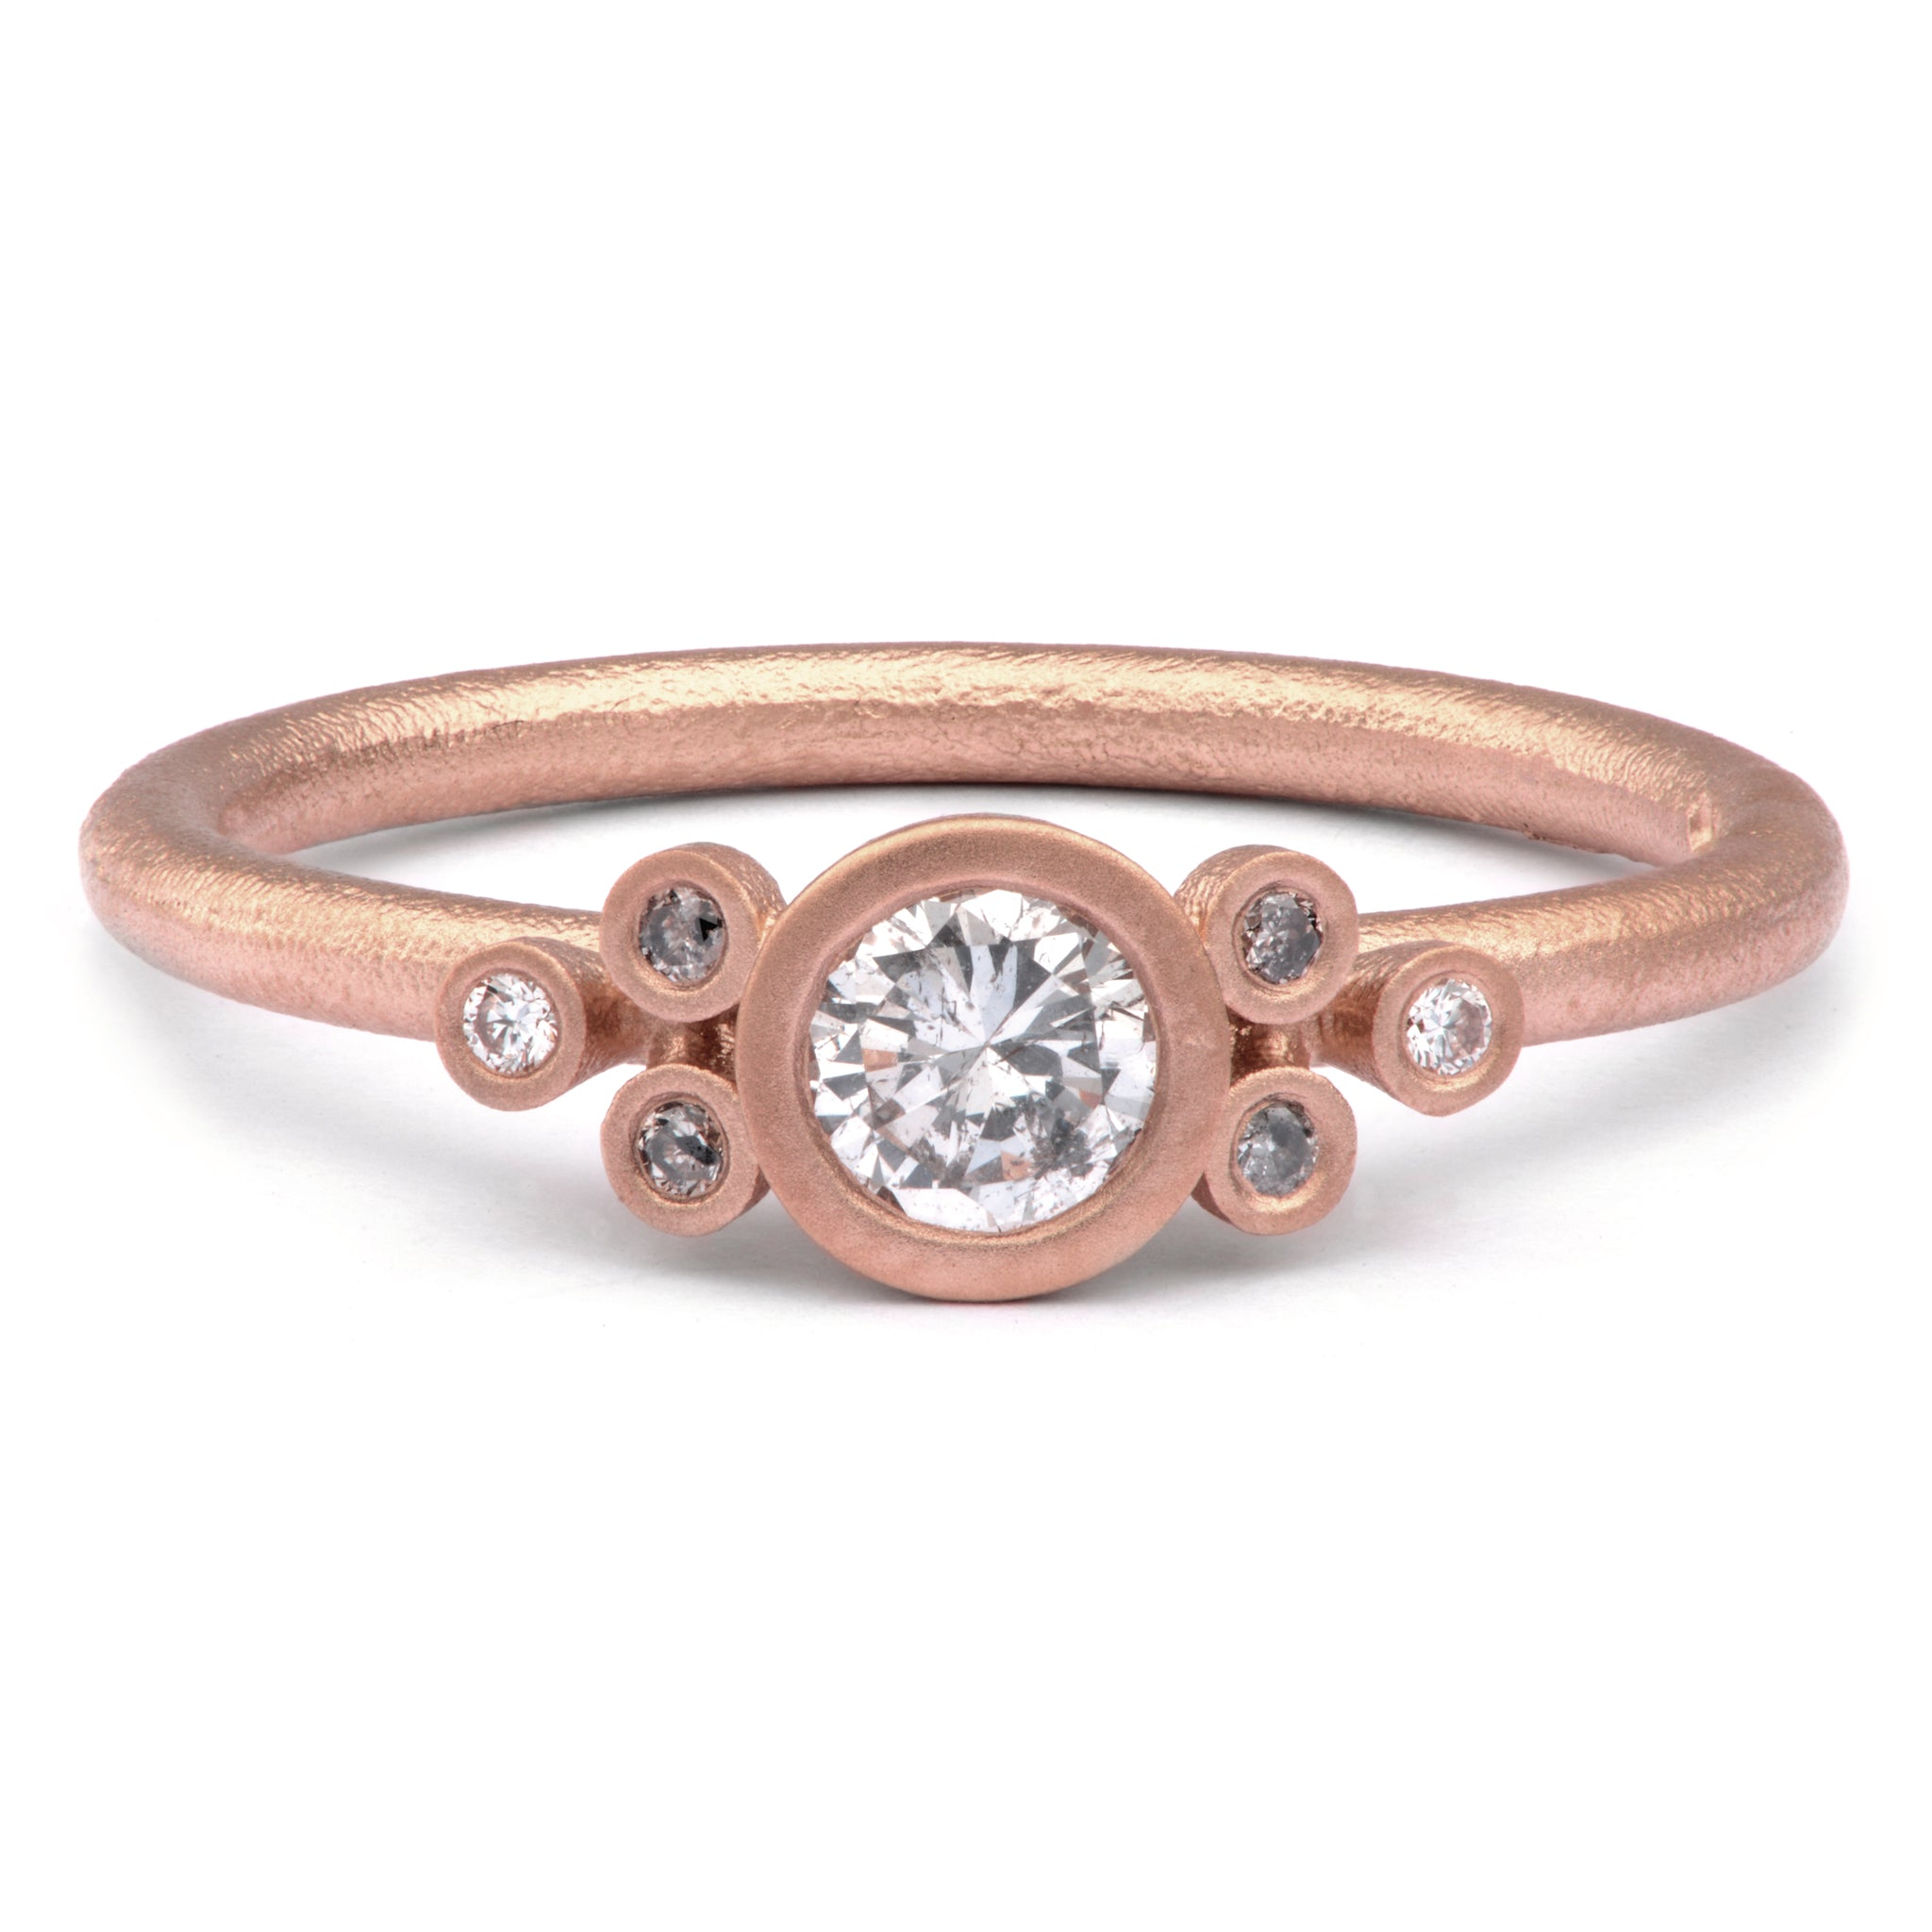 30pt Salt and Pepper Diamond Ring in 9ct Red Gold - James Newman Jewellery